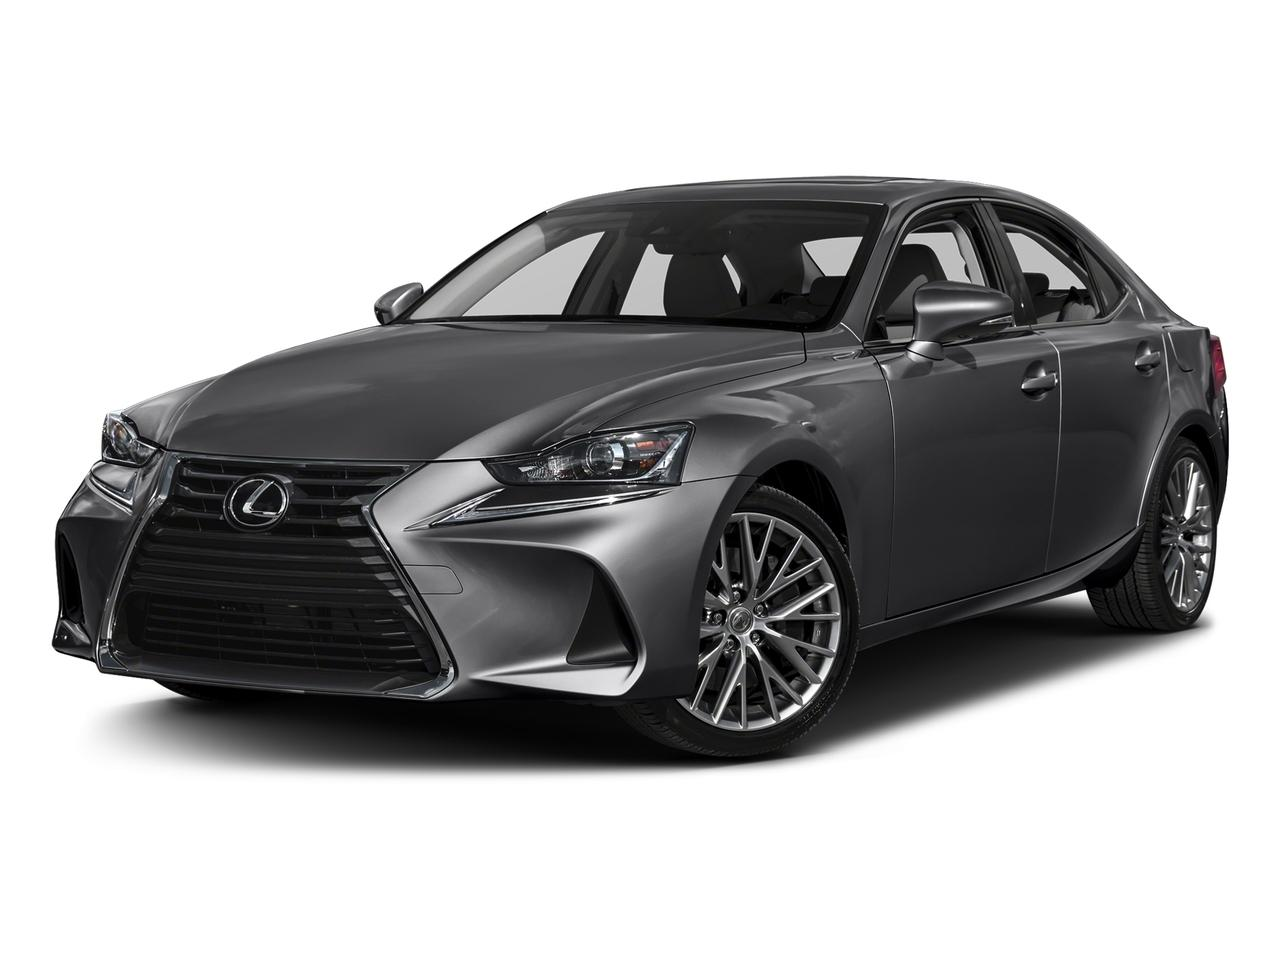 2017 Lexus IS Turbo Vehicle Photo in DULUTH, GA 30096